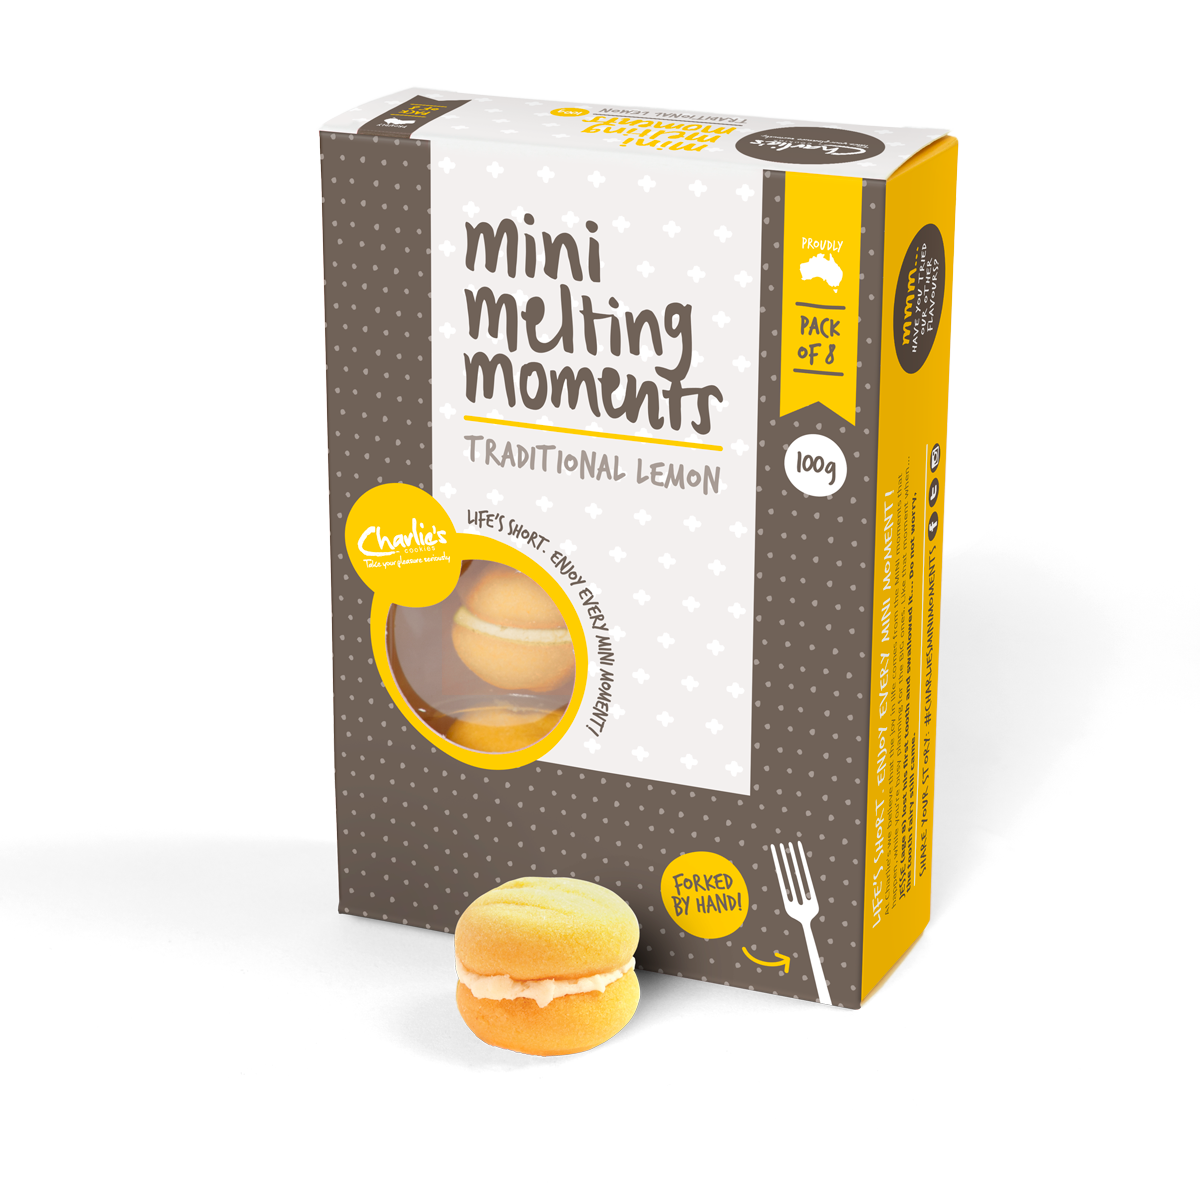 Charlie's Traditional Lemon Mini Melting Moments 100g